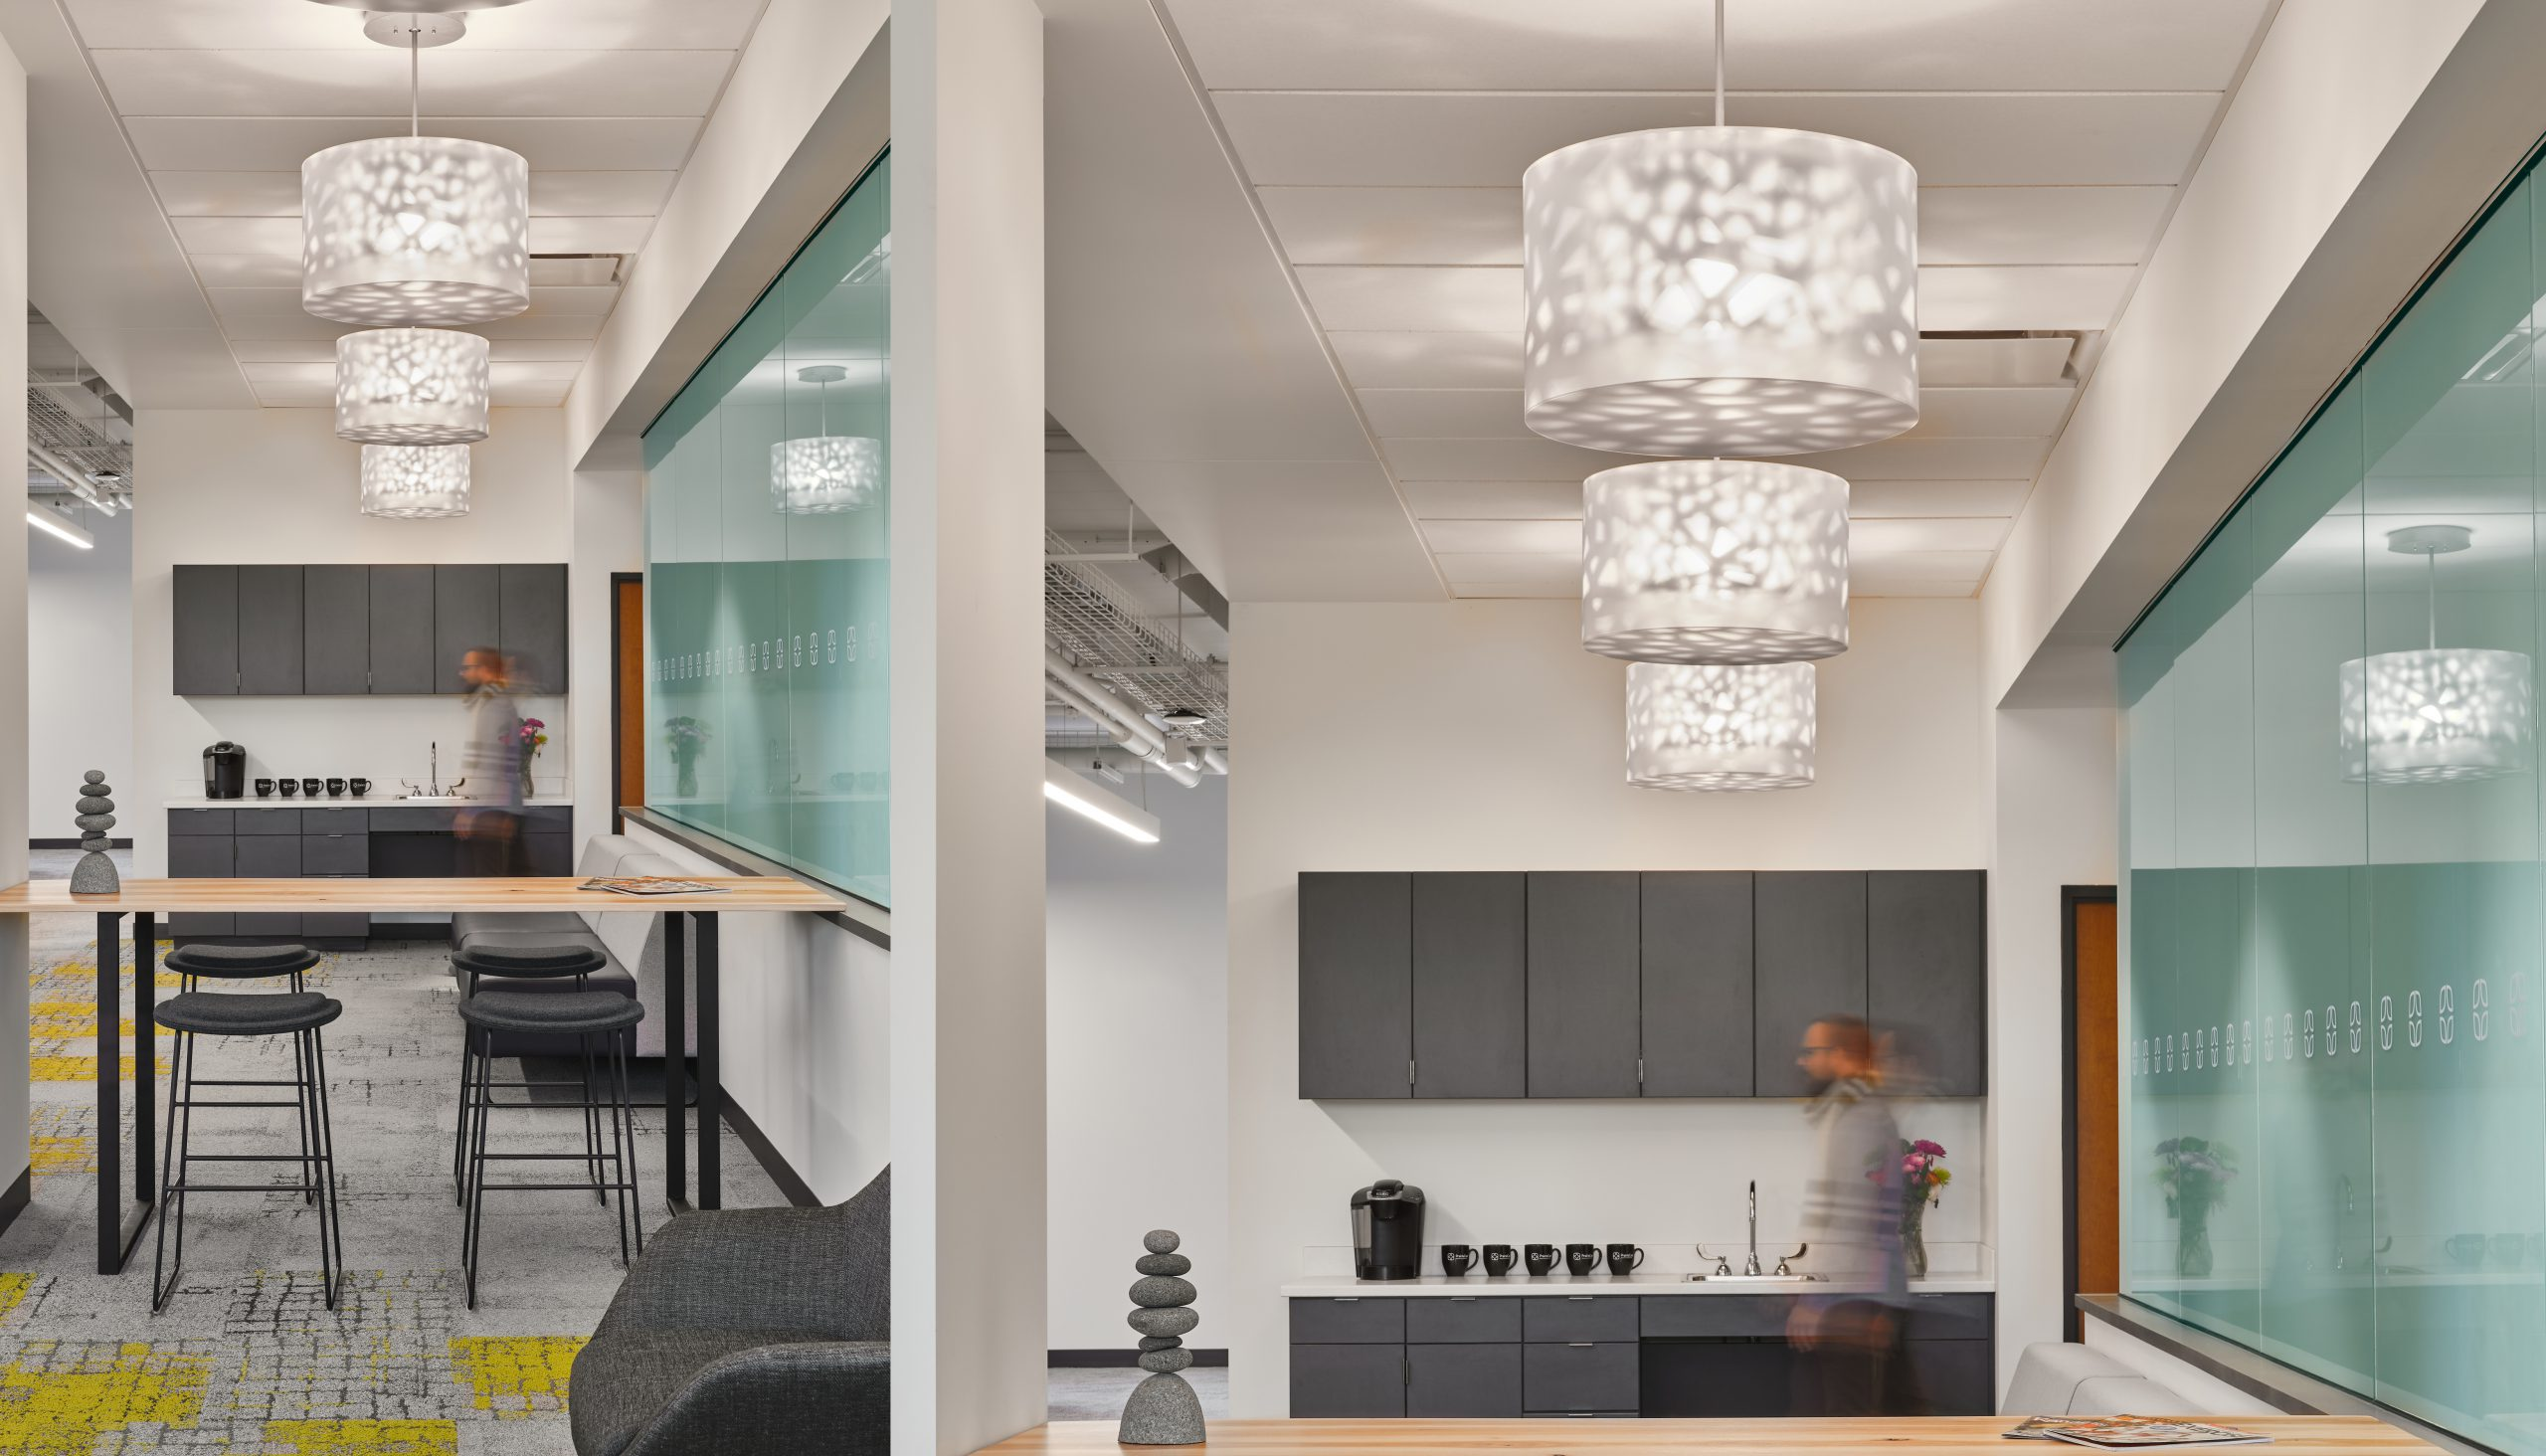 Lumetta offers lighting solutions for healthcare environments.